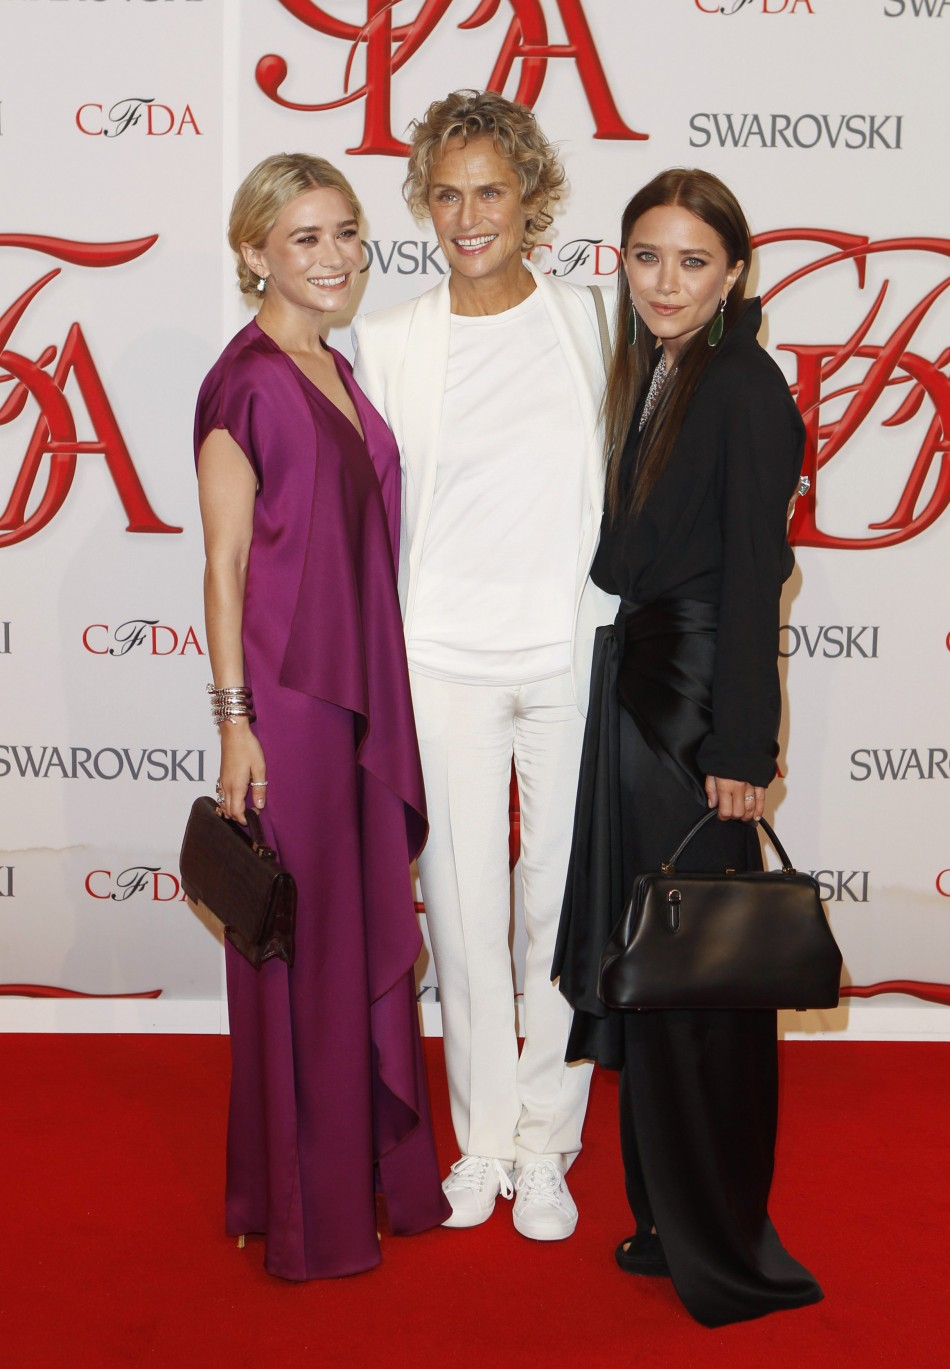 Actresses and designers Ashley and Mary-Kate Olsen arrive with actress Hutton to attend the 2012 CFDA Fashion Awards in New York